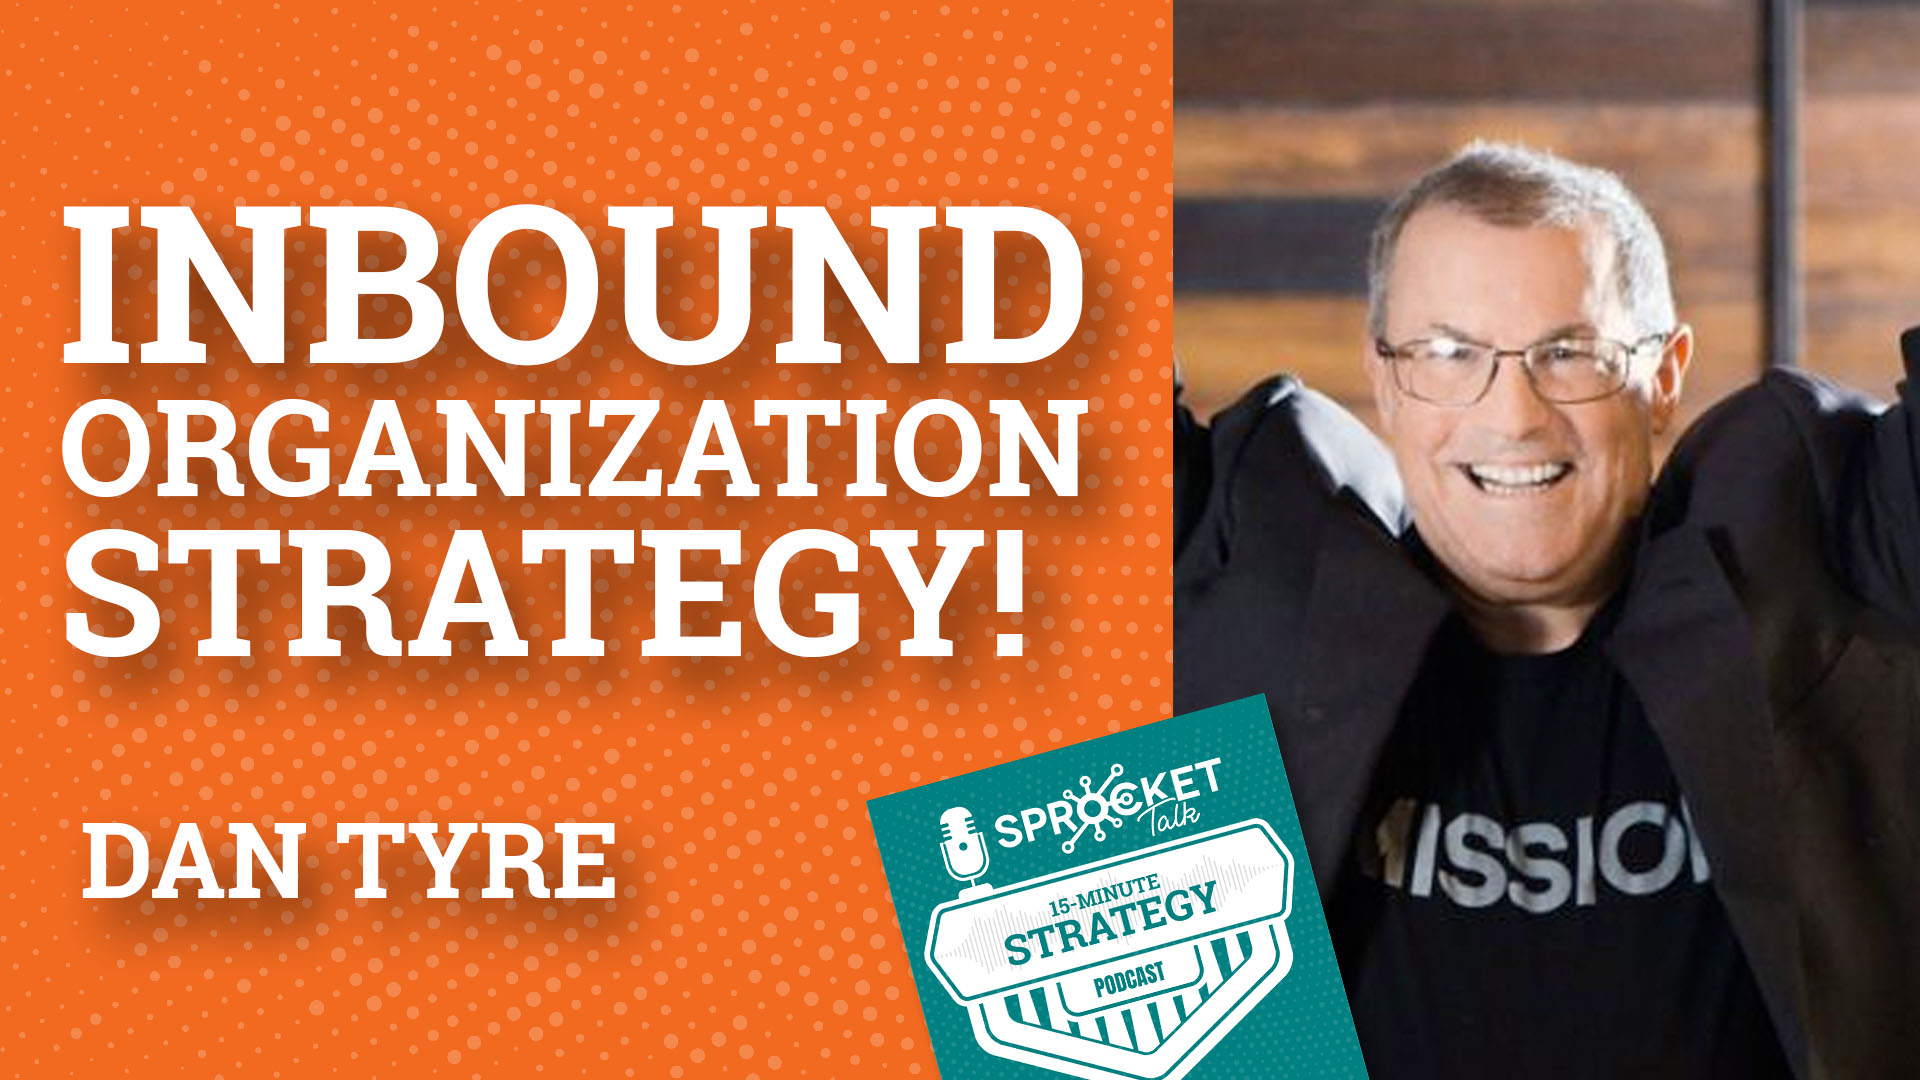 Dan Tyre on an Inbound Organization Strategy 15-Minute Strategy Podcast